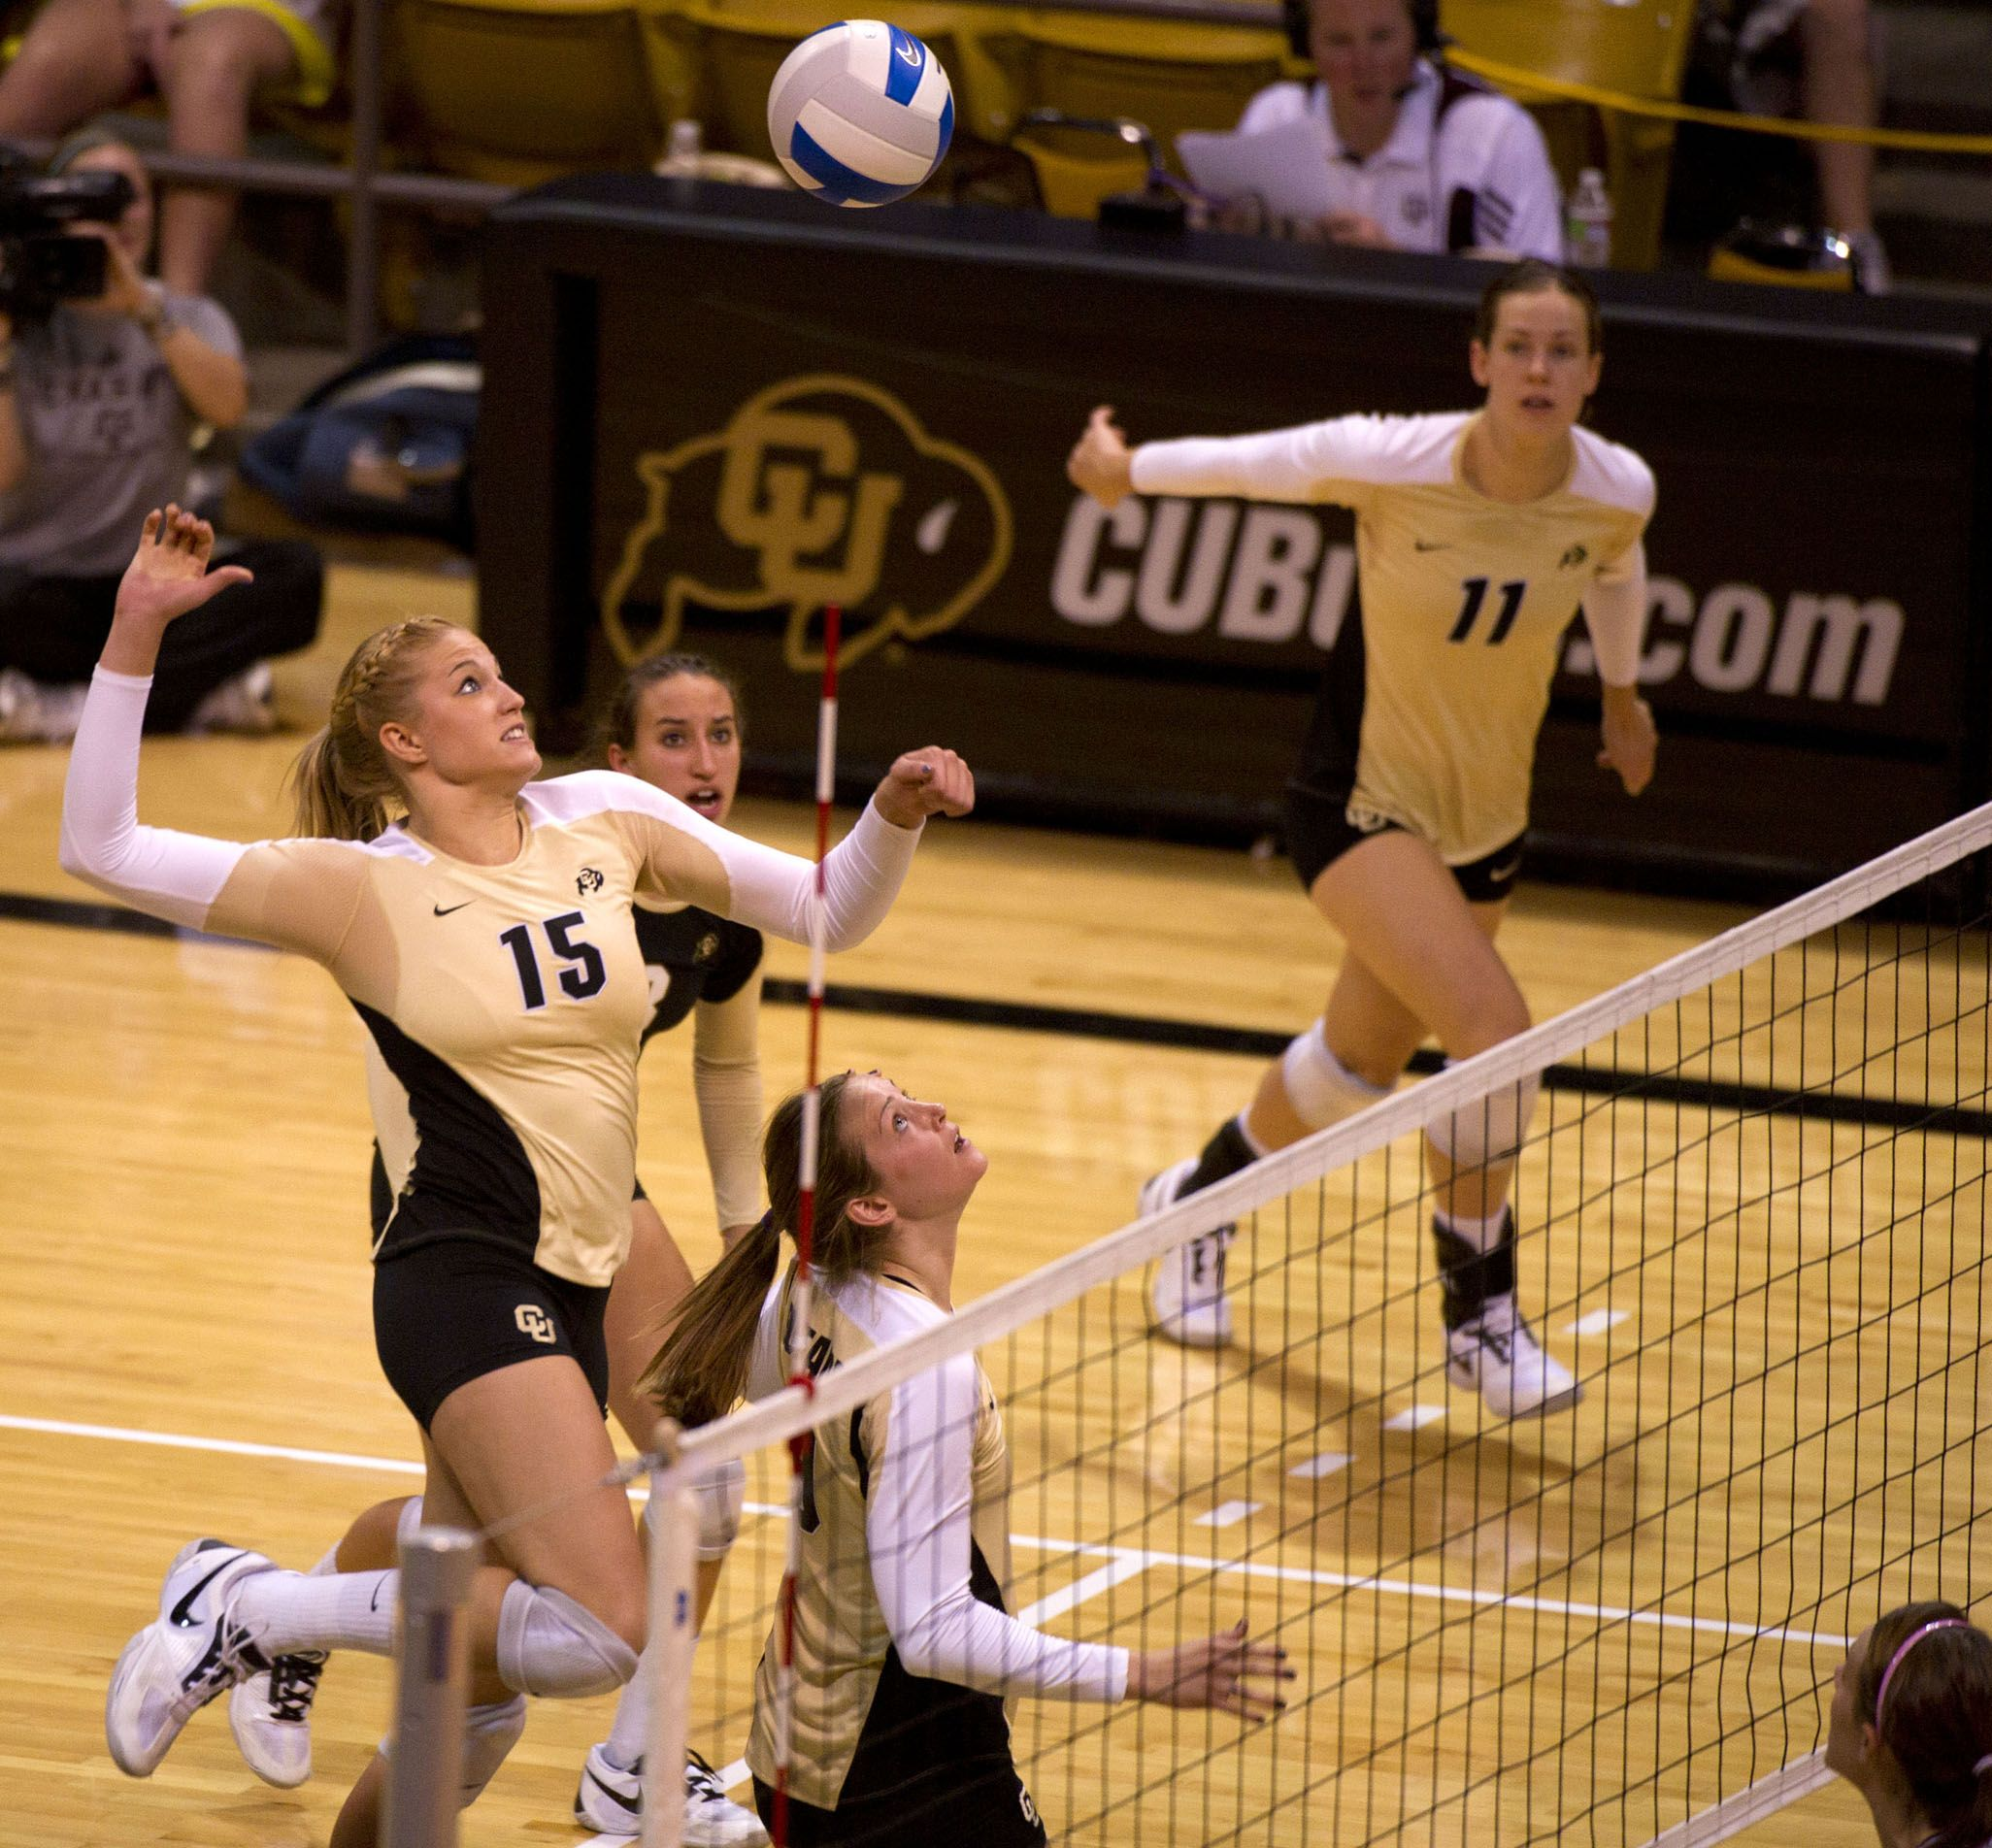 Buffs Volleyball Falls To Aggies Cu Independent Volleyball Broncos Fans Dream School